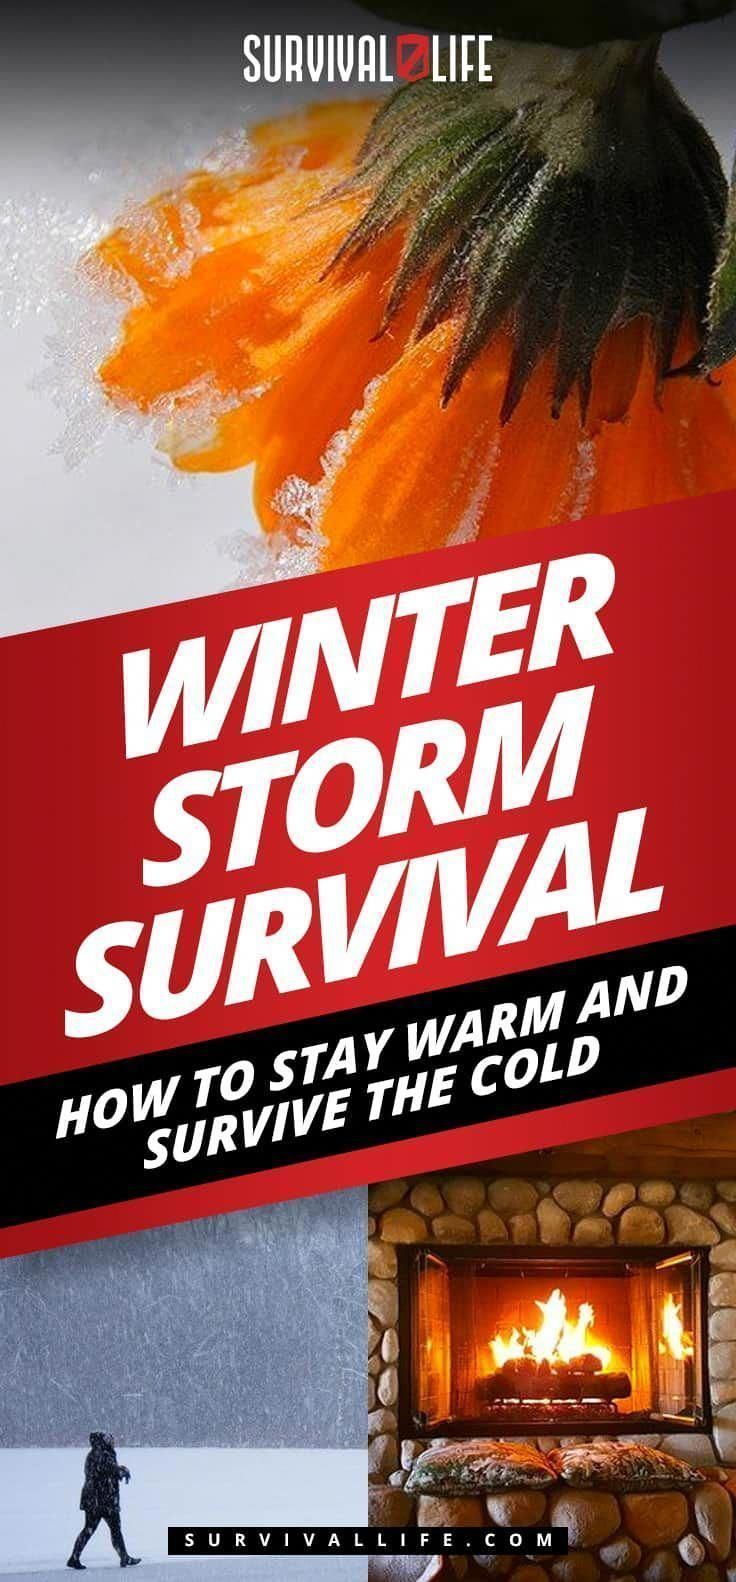 Winter Storm Survival: How To Stay Warm And Survive The Cold #wintersurvivalsupplies Winter Storm Survival: How to Stay Warm and Survive the Cold #familysurvivaltips #wintersurvivalsupplies Winter Storm Survival: How To Stay Warm And Survive The Cold #wintersurvivalsupplies Winter Storm Survival: How to Stay Warm and Survive the Cold #familysurvivaltips #wintersurvivalsupplies Winter Storm Survival: How To Stay Warm And Survive The Cold #wintersurvivalsupplies Winter Storm Survival: How to Stay #wintersurvivalsupplies